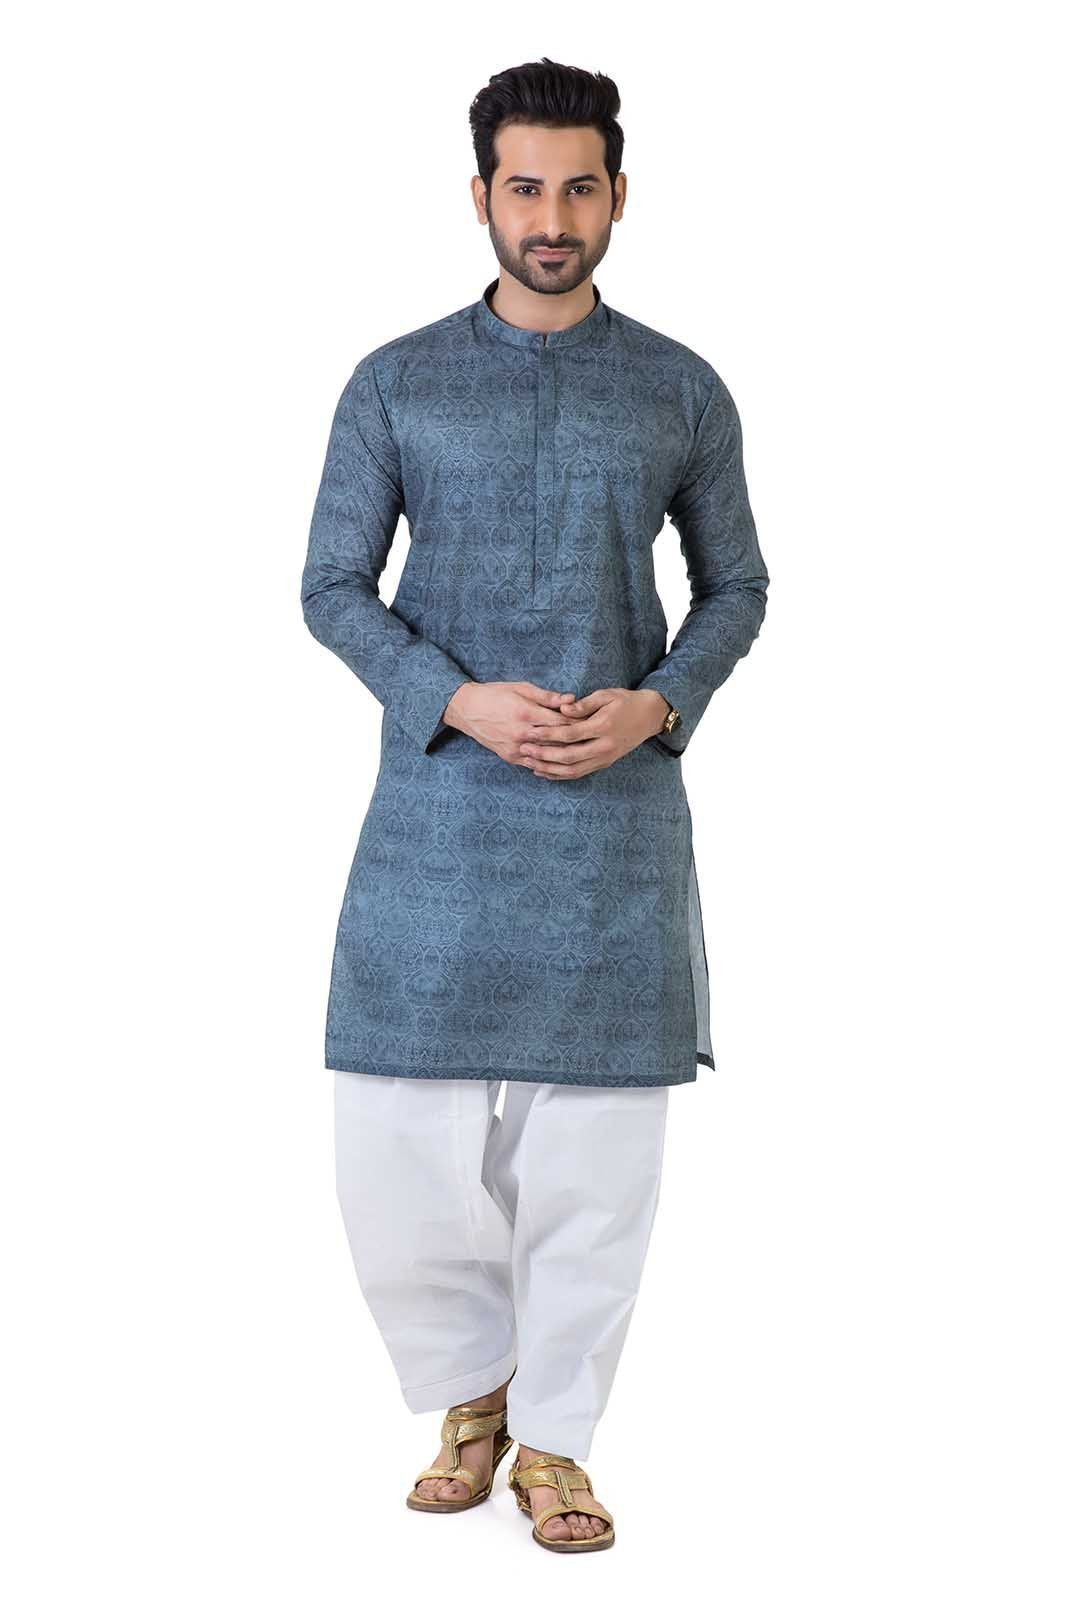 Latest Men's Shalwar Kameez For Eid